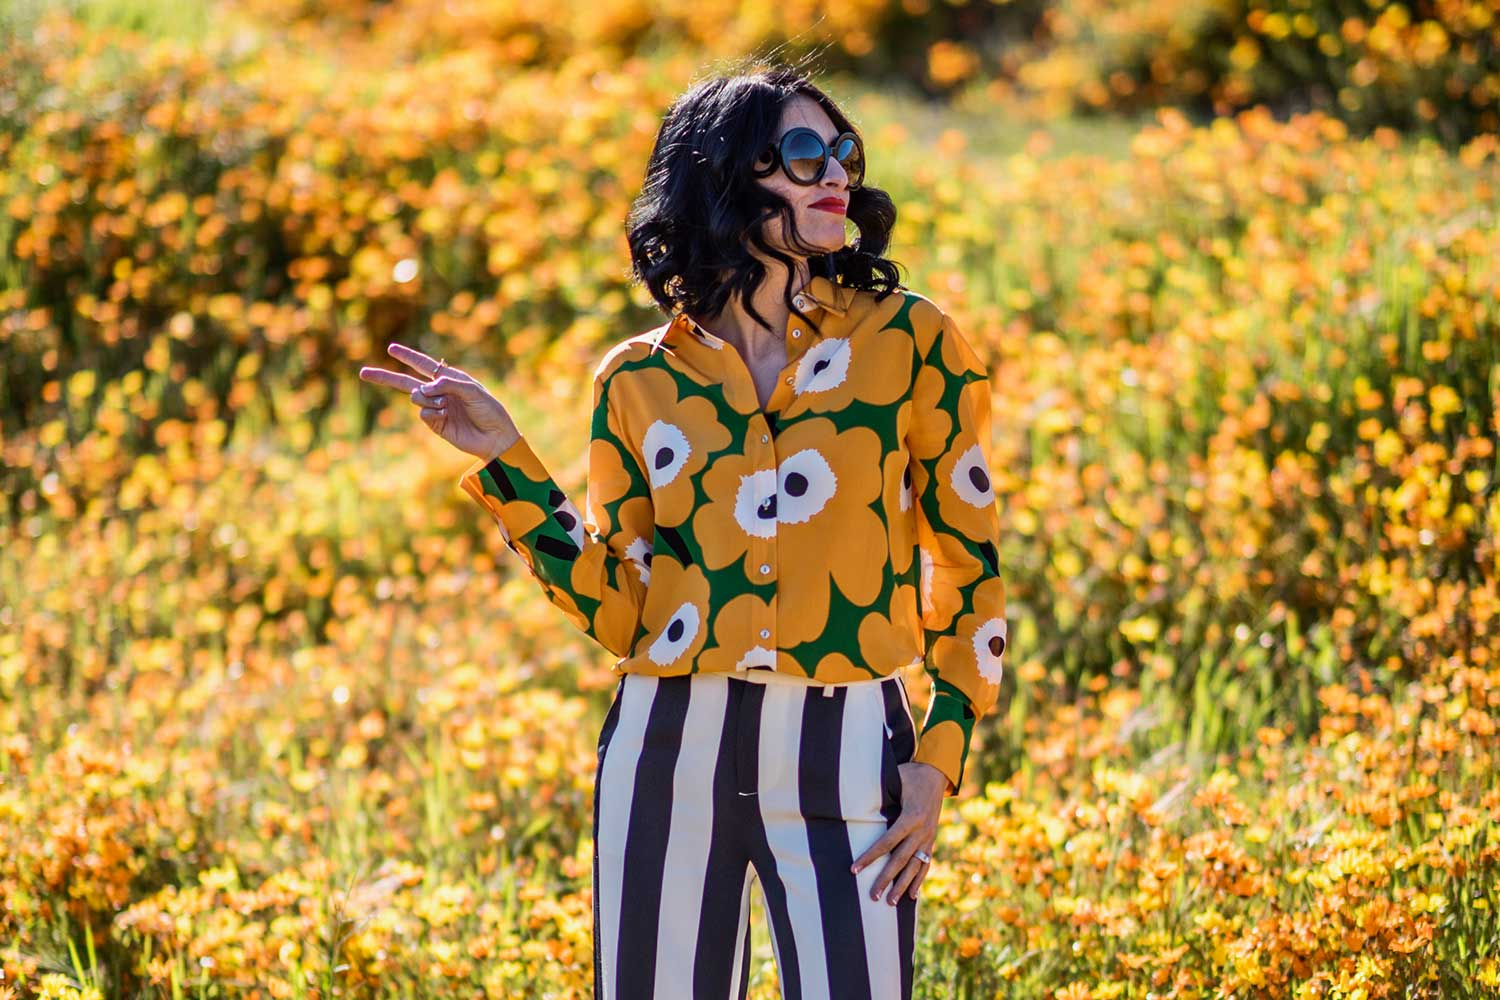 Jenna-Pilant-Style-Blogger-Lucky-Little-Mustardseed-Spring-Fashion-2017-Marimekko-Shirt-with-Alice-and-Olivia-Pants-7